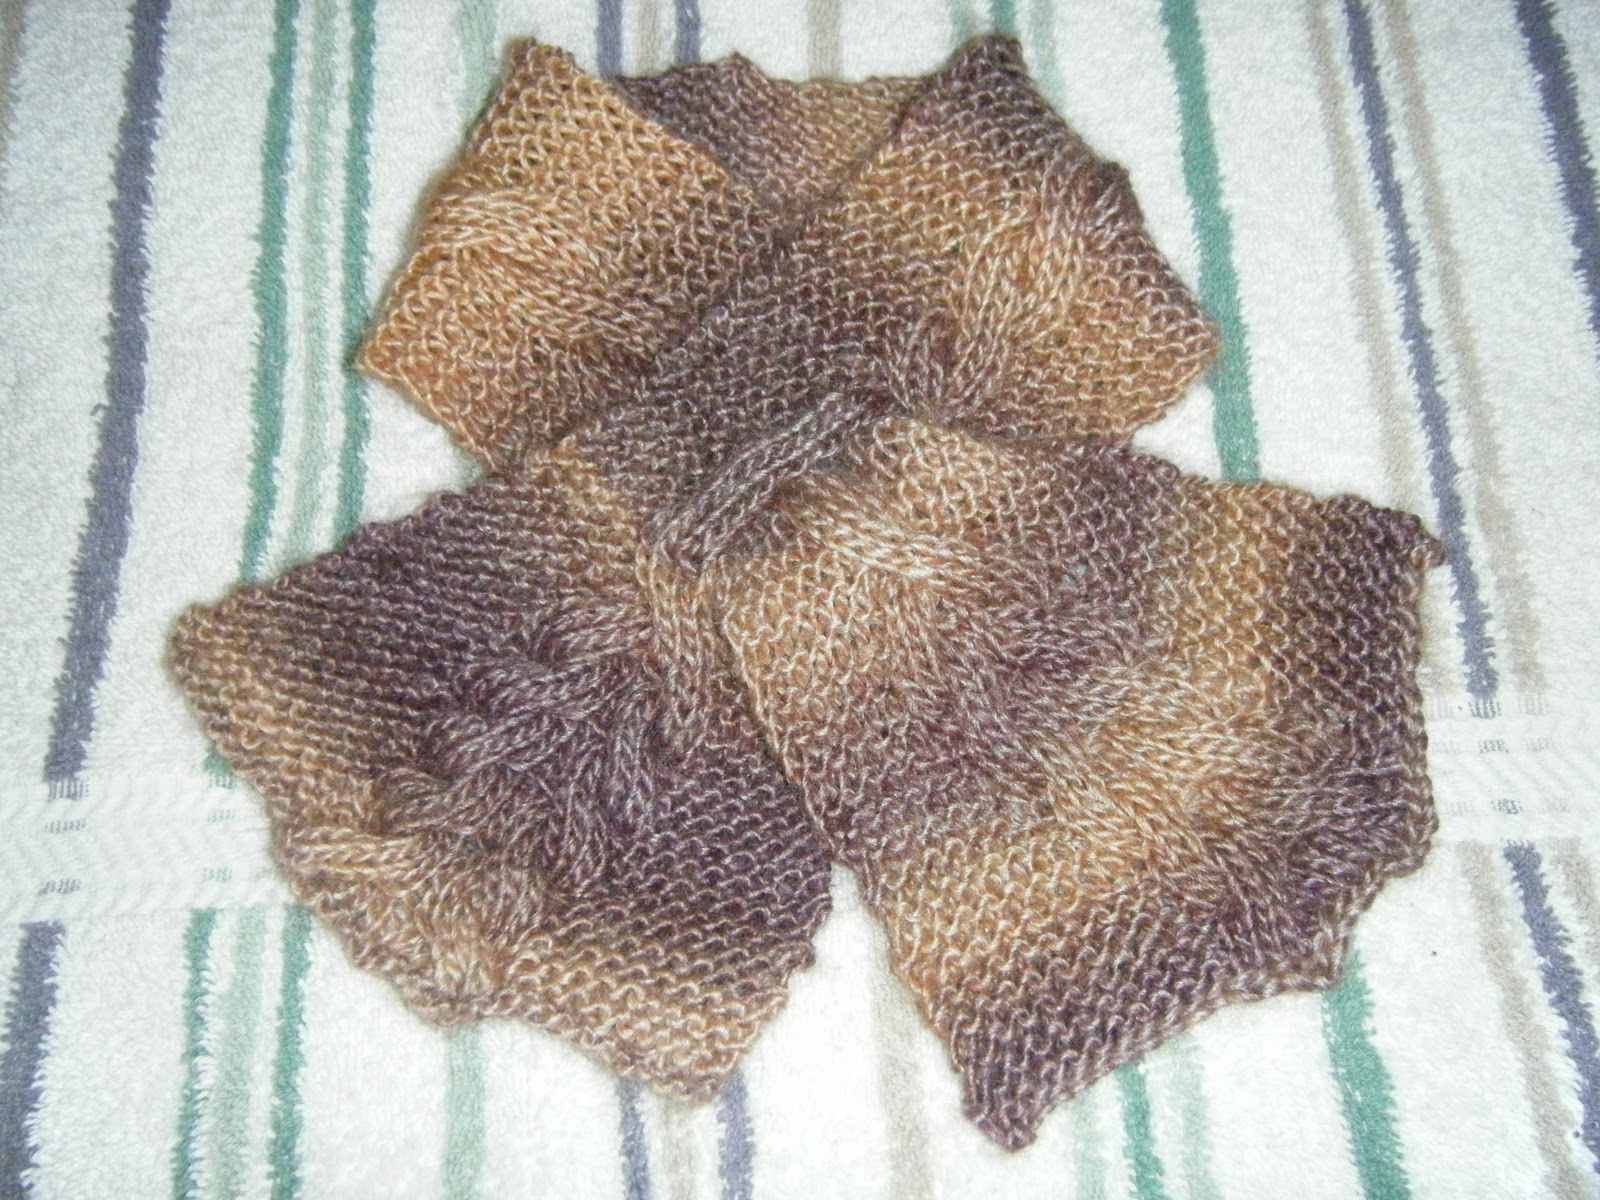 Knitting Pattern Keyhole Scarf : Suzannes Knitting and Spinning Blog: Two Cabled Keyhole ...